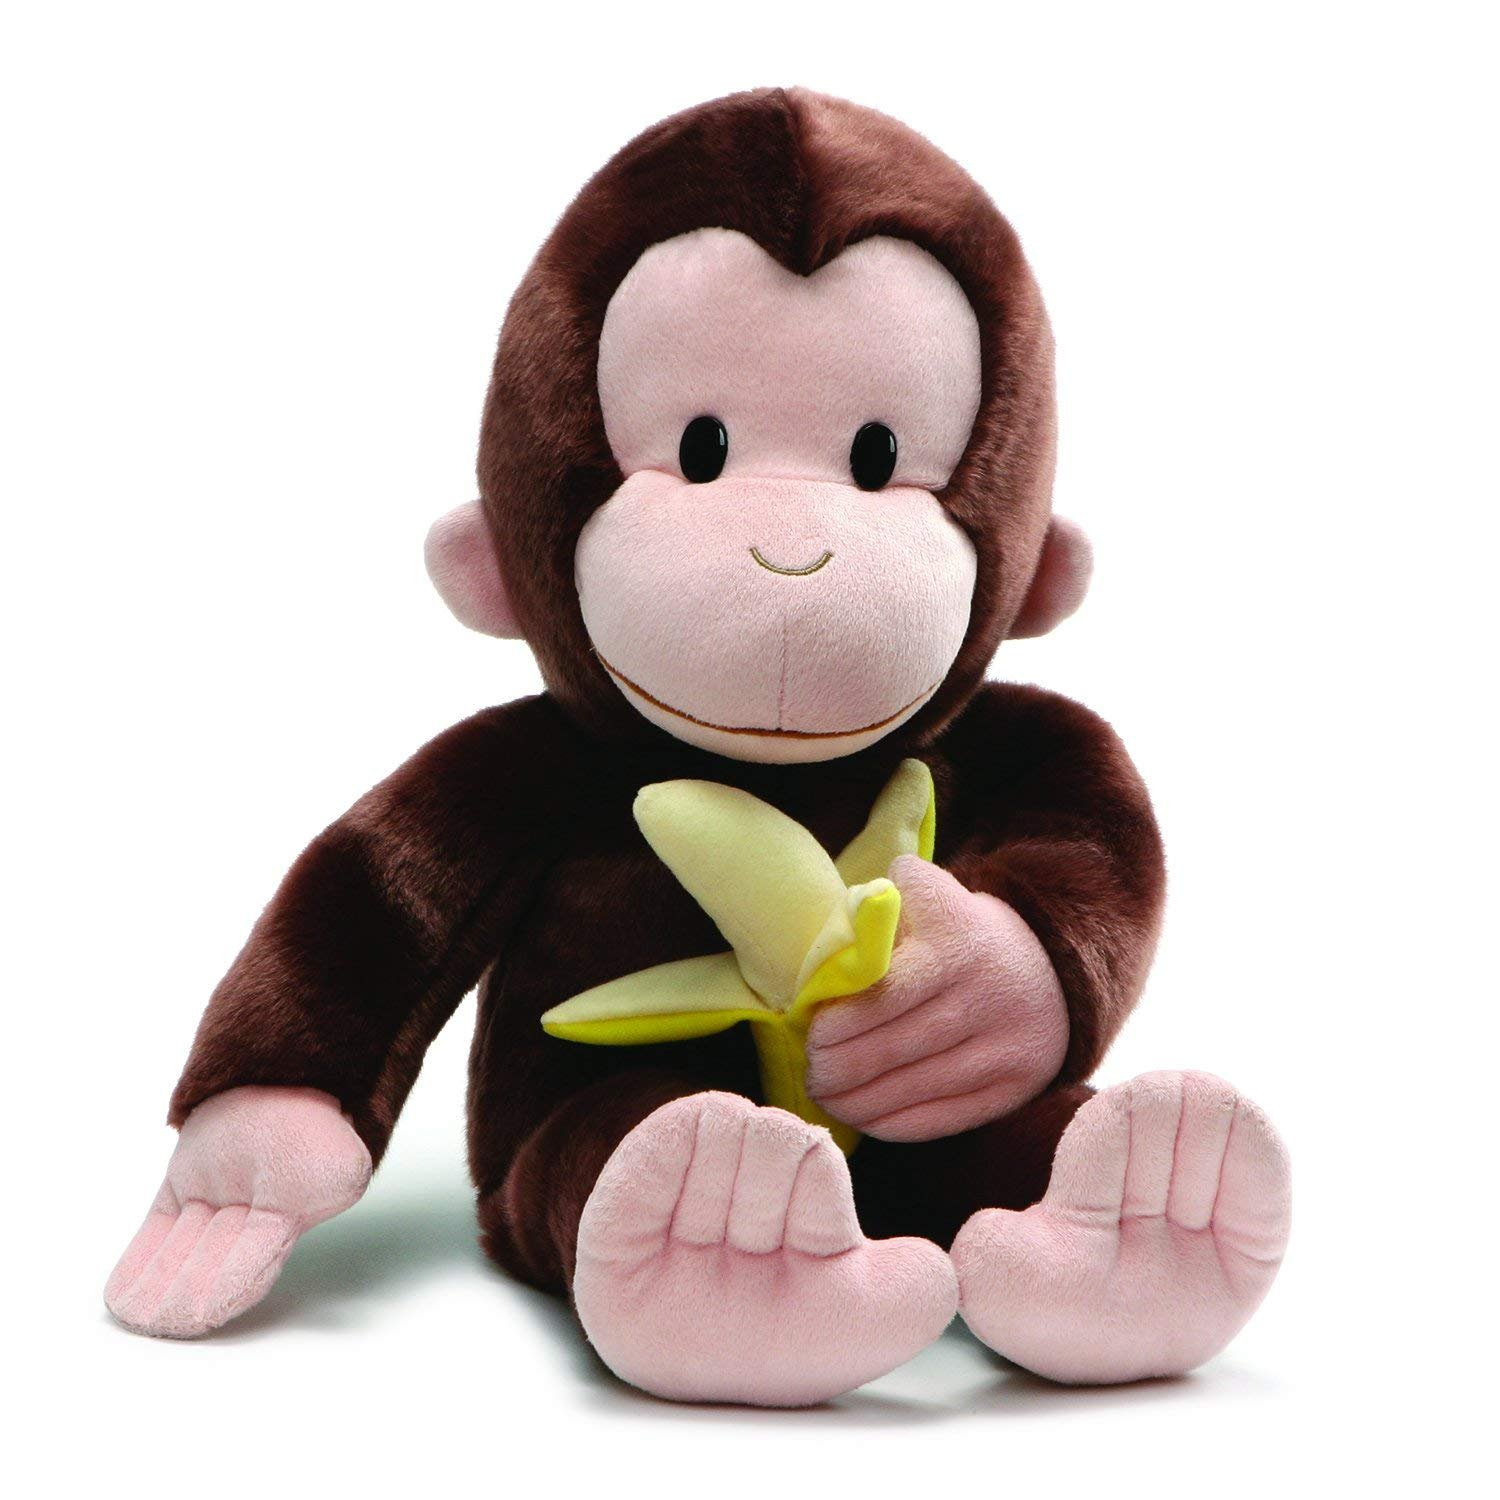 GUND 4061282 Curious George with Banana Plush Stuffed Animal, 20�, Brown by Gund